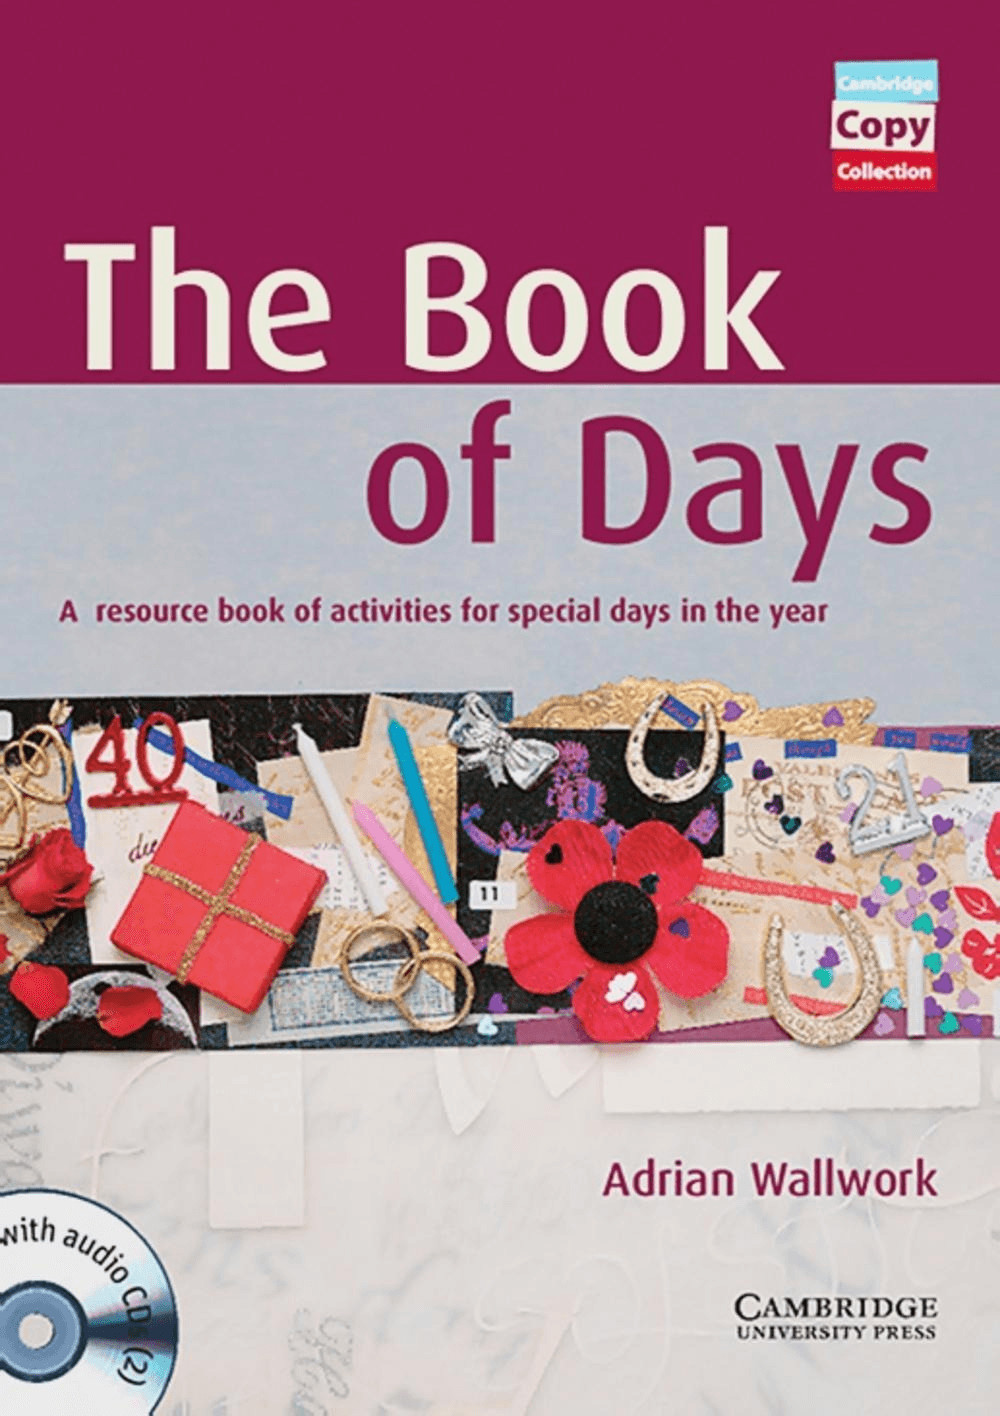 The Book of Days (Wallwork, Adrian)